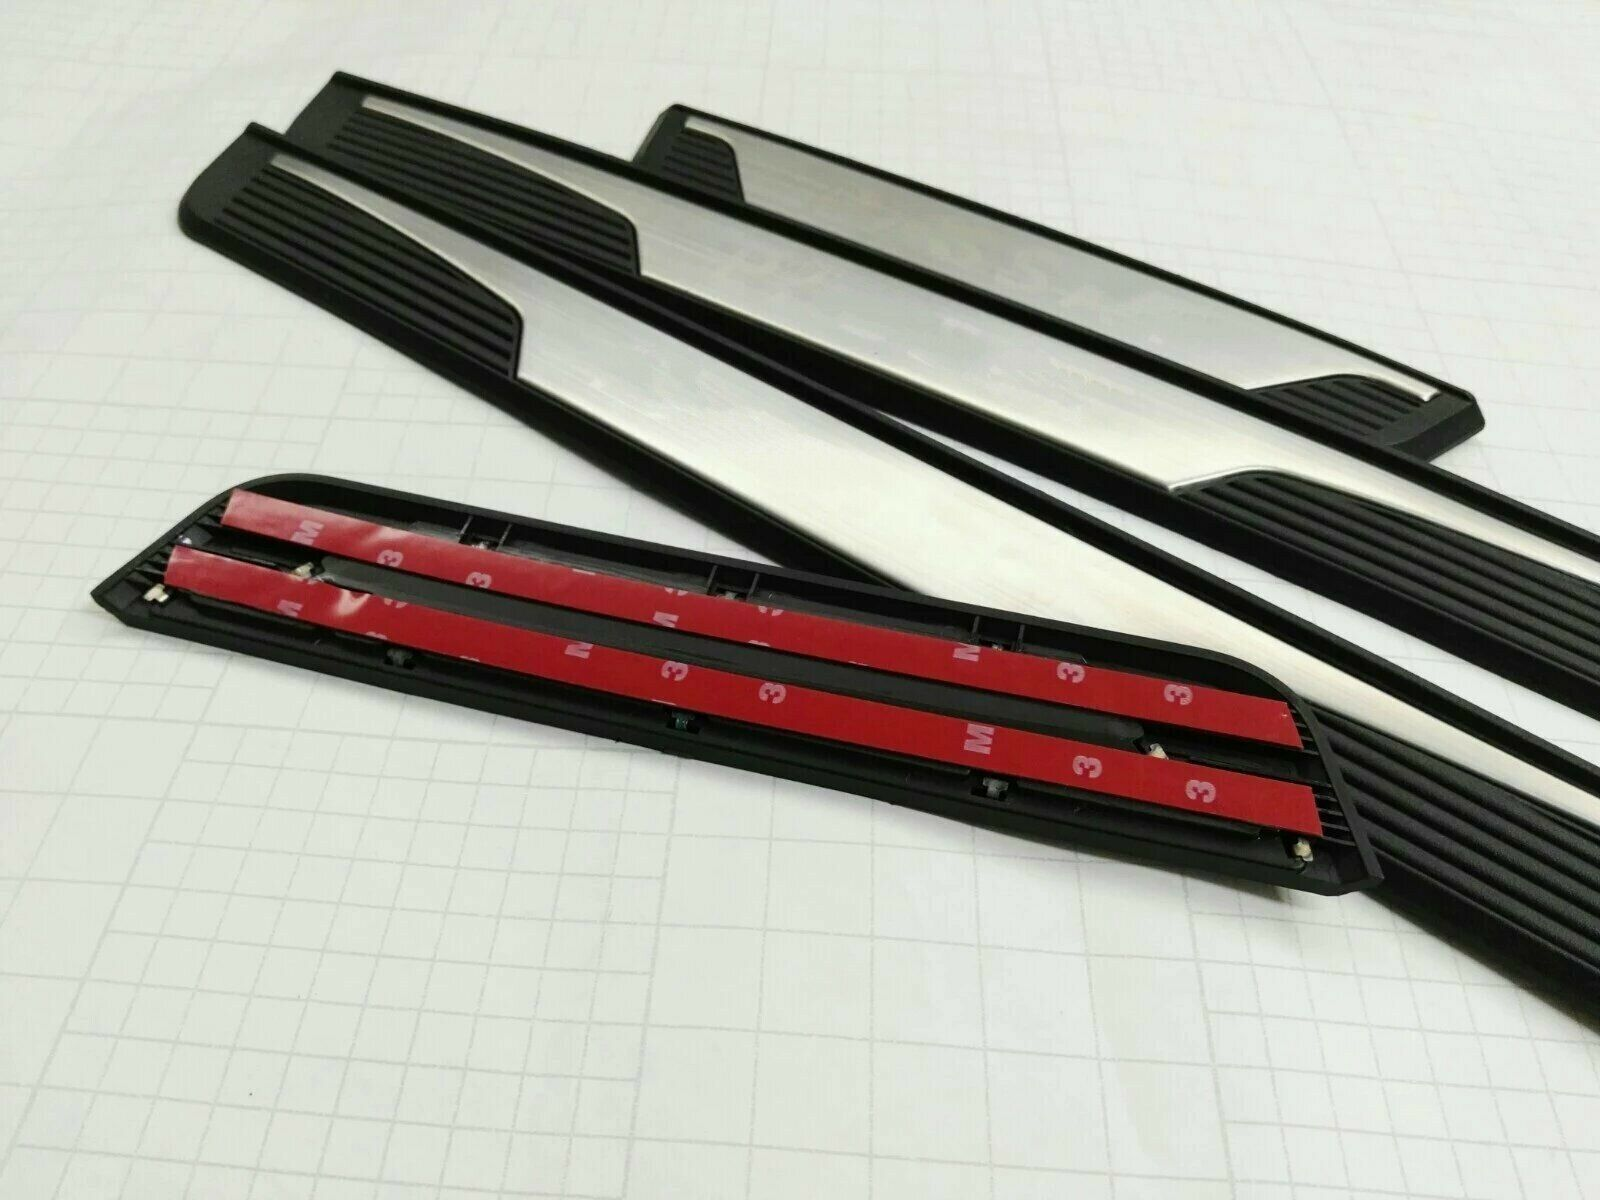 for VW Volkswagen Passat Car Accessories Car Door Sill Scuff Plate Door Step Protectors Carbon Fiber Vinyl Sticker Auto Parts 4pcs